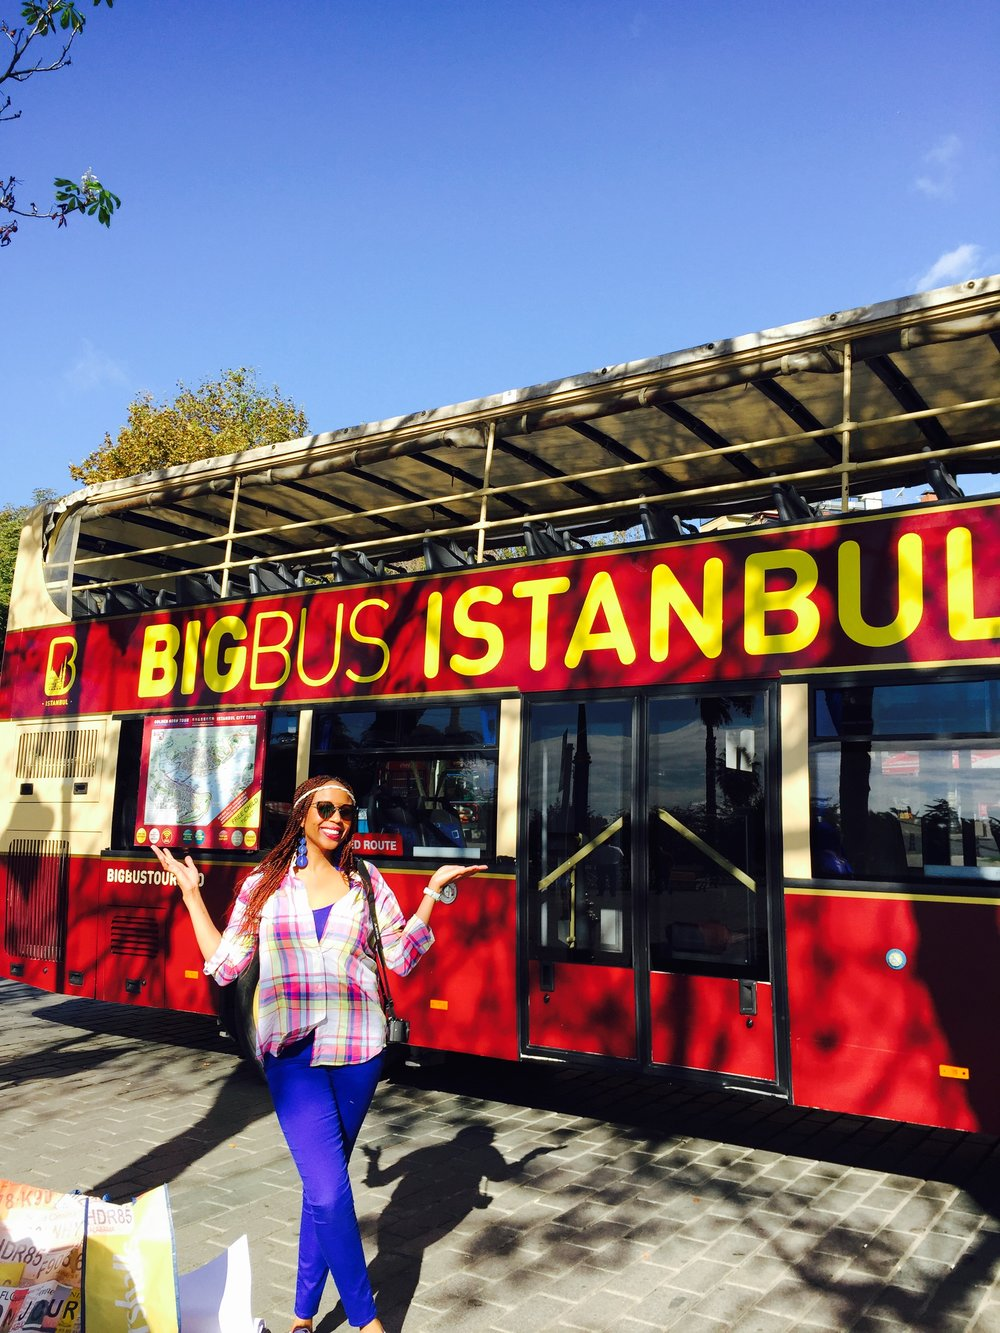 No crowds to beat in Istanbul...  There were 5 tourists on the entire bus!